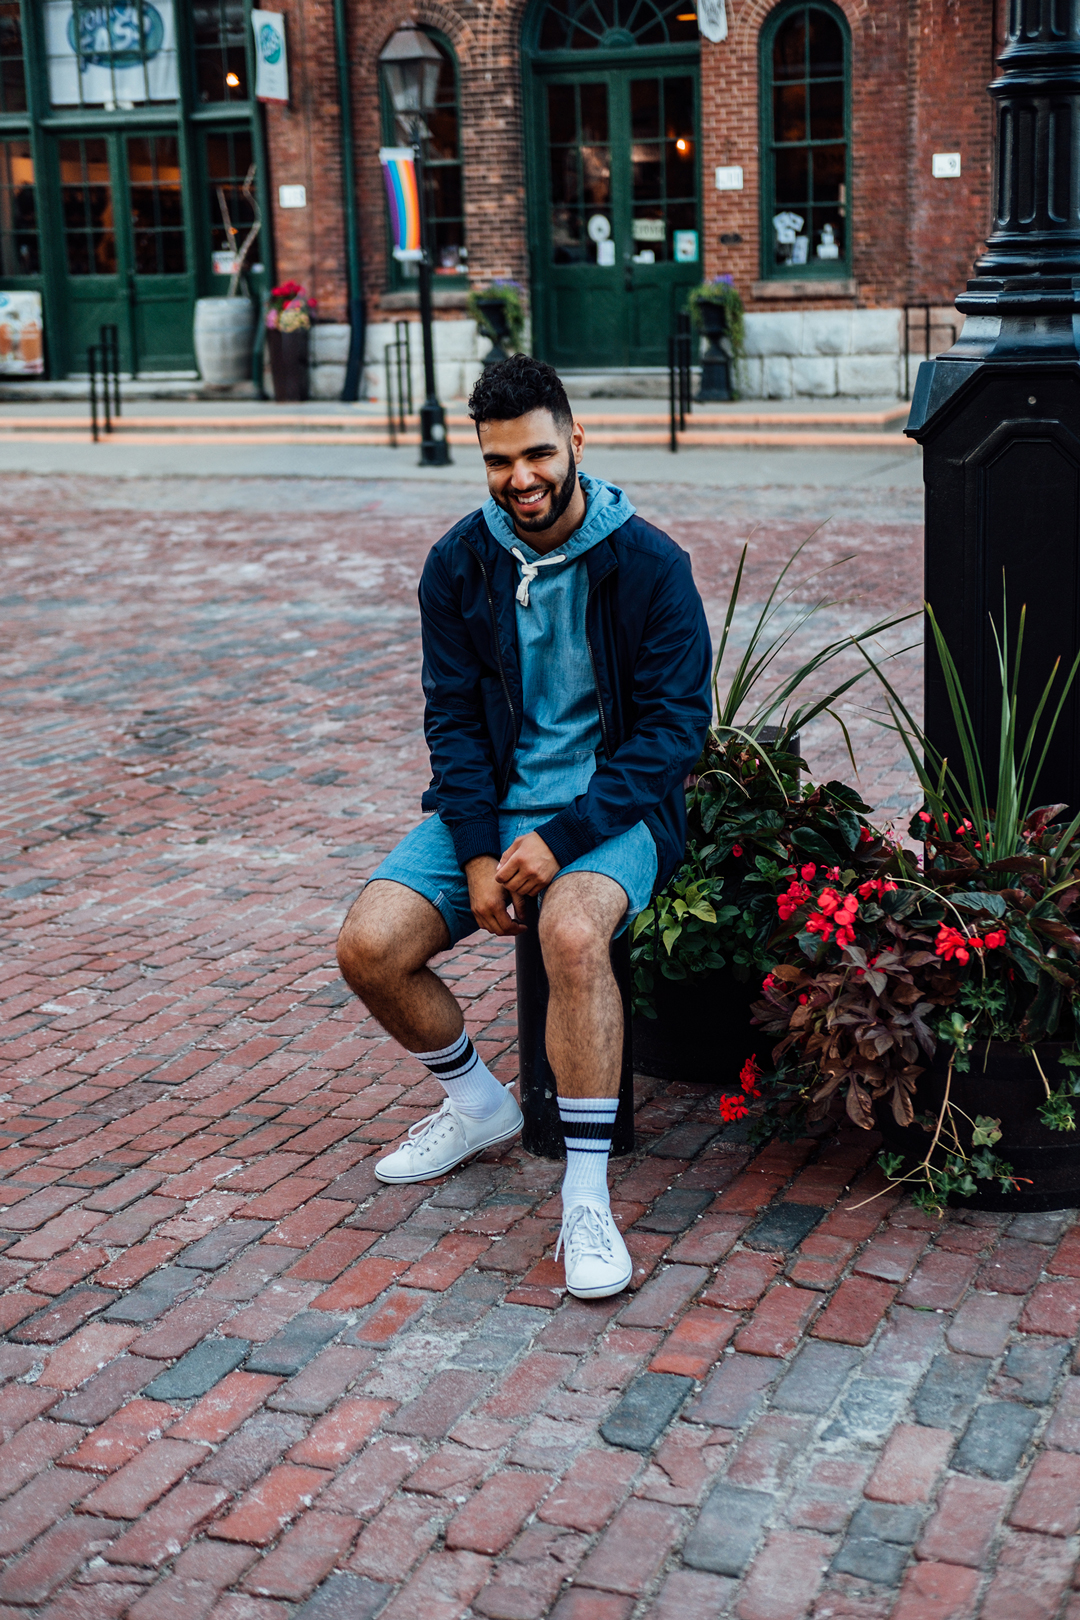 Hugo Filipe Toronto Men's Fashion Blogger G-Star Raw Outfit